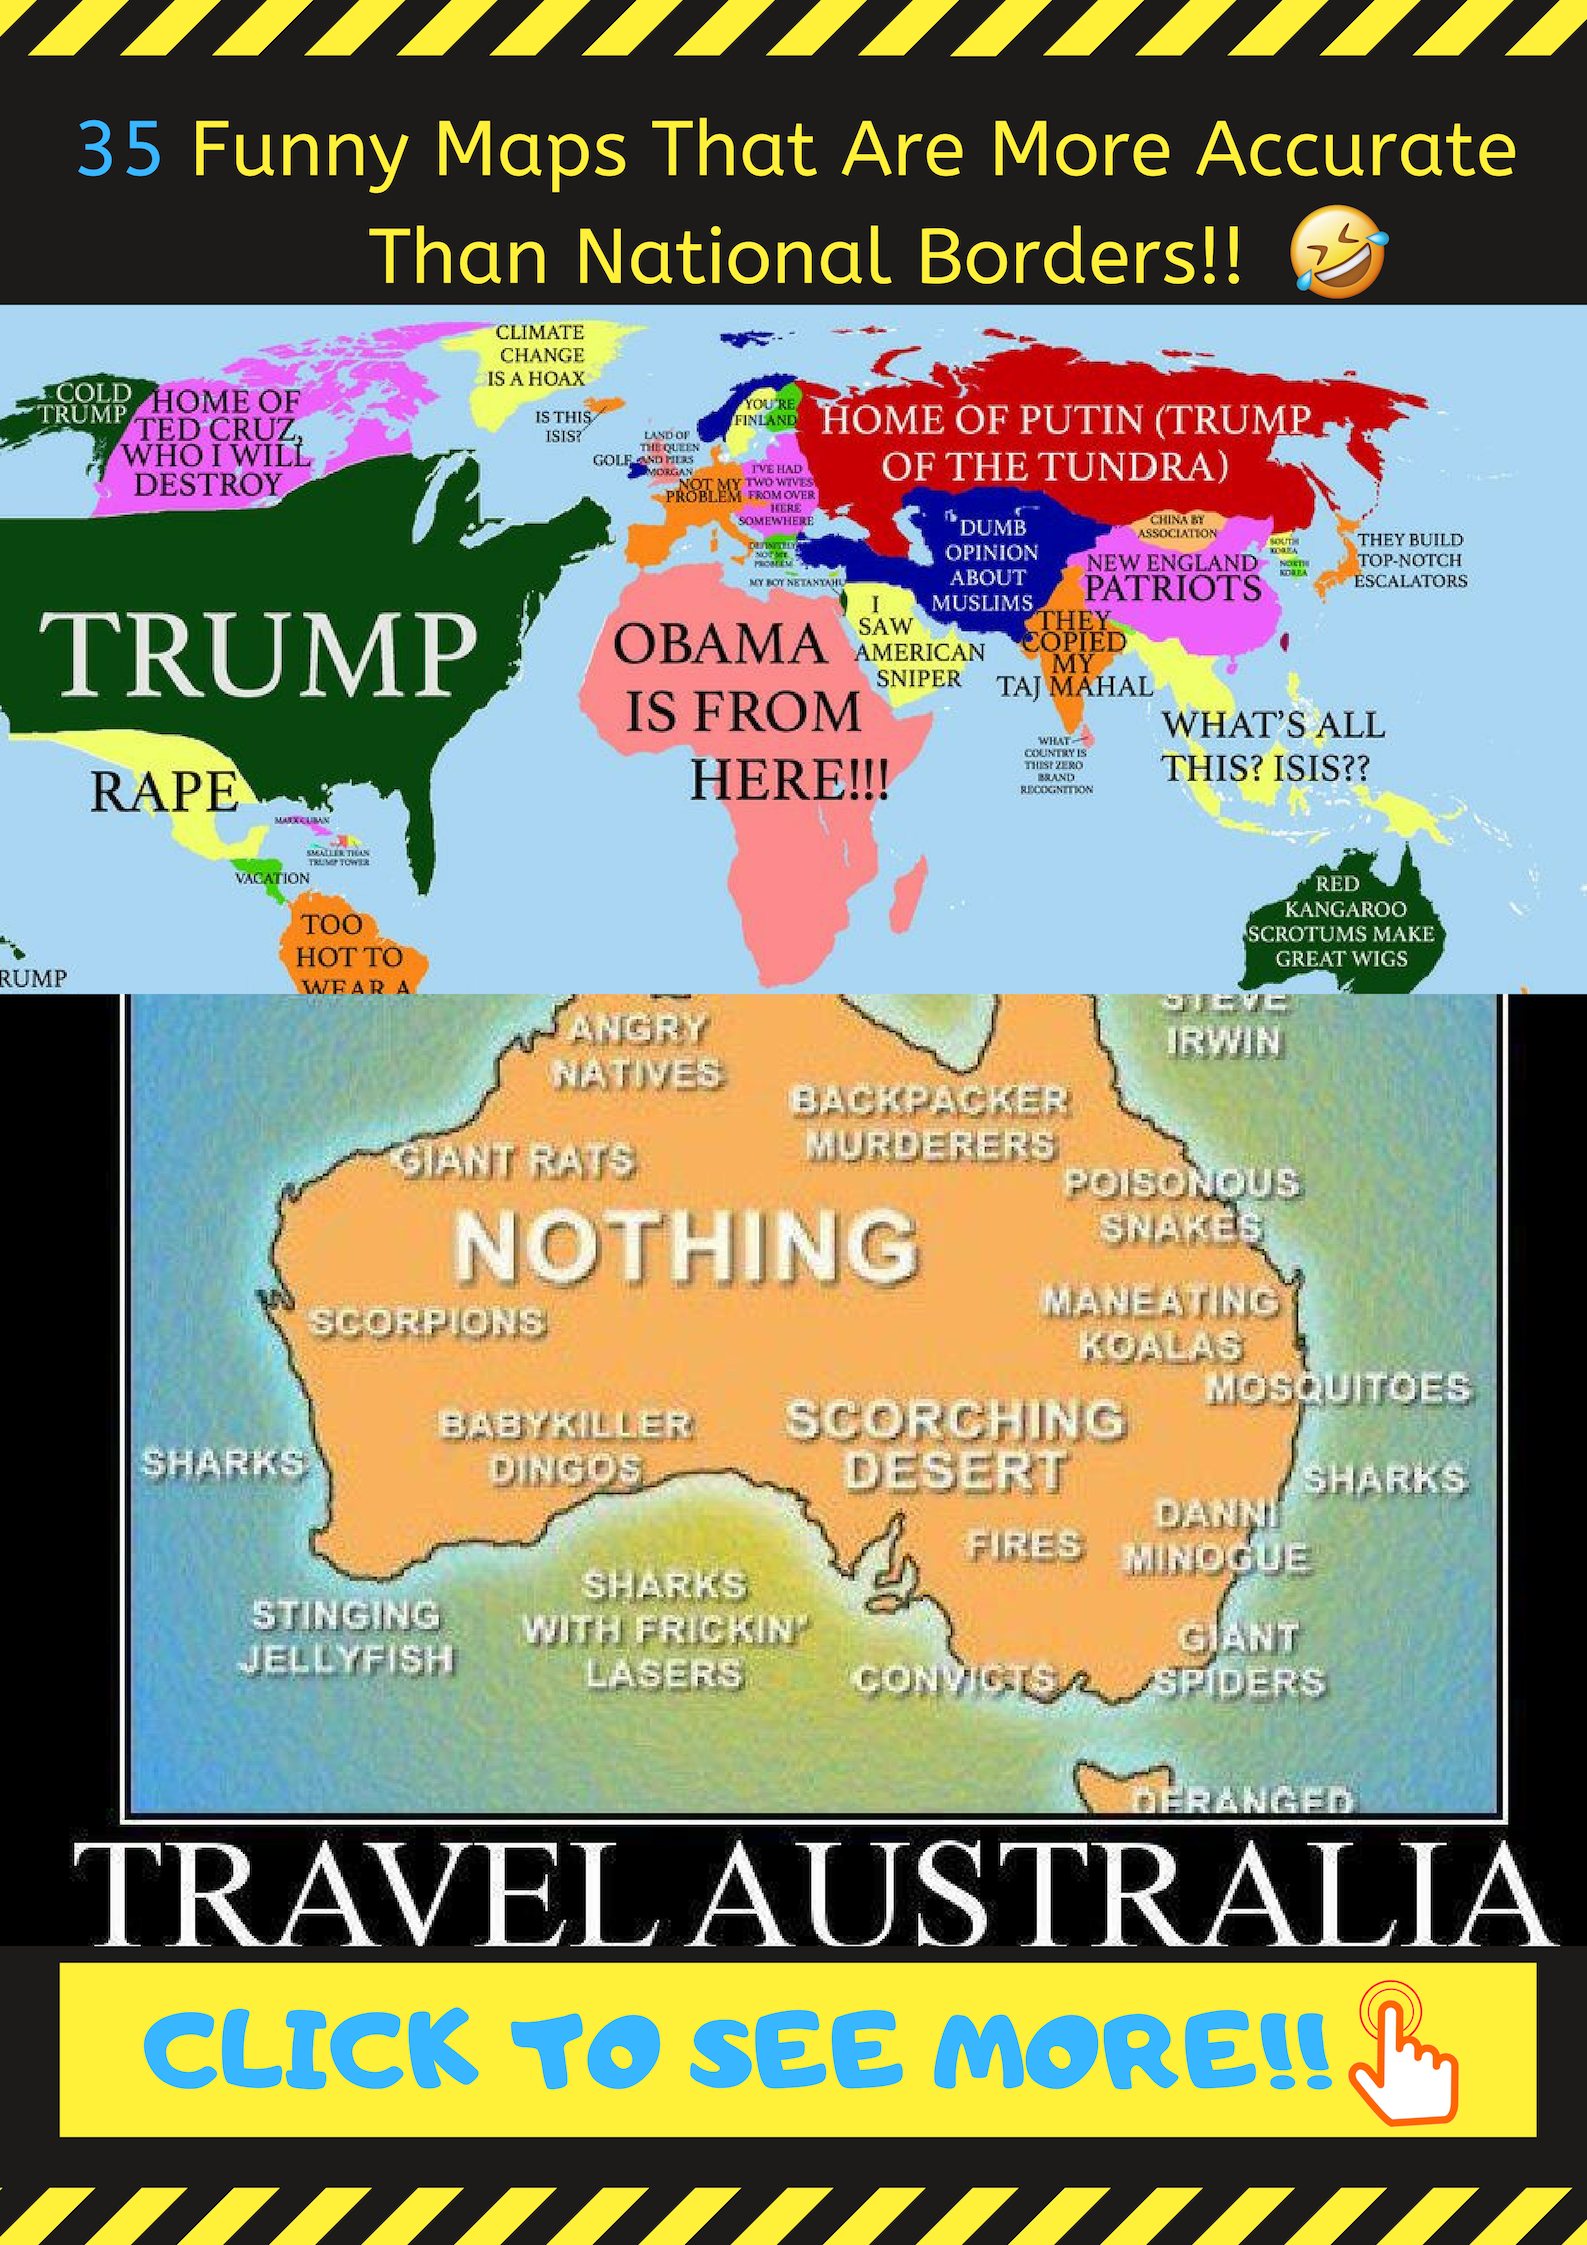 35 Funny Maps That Are More Accurate Than National Borders